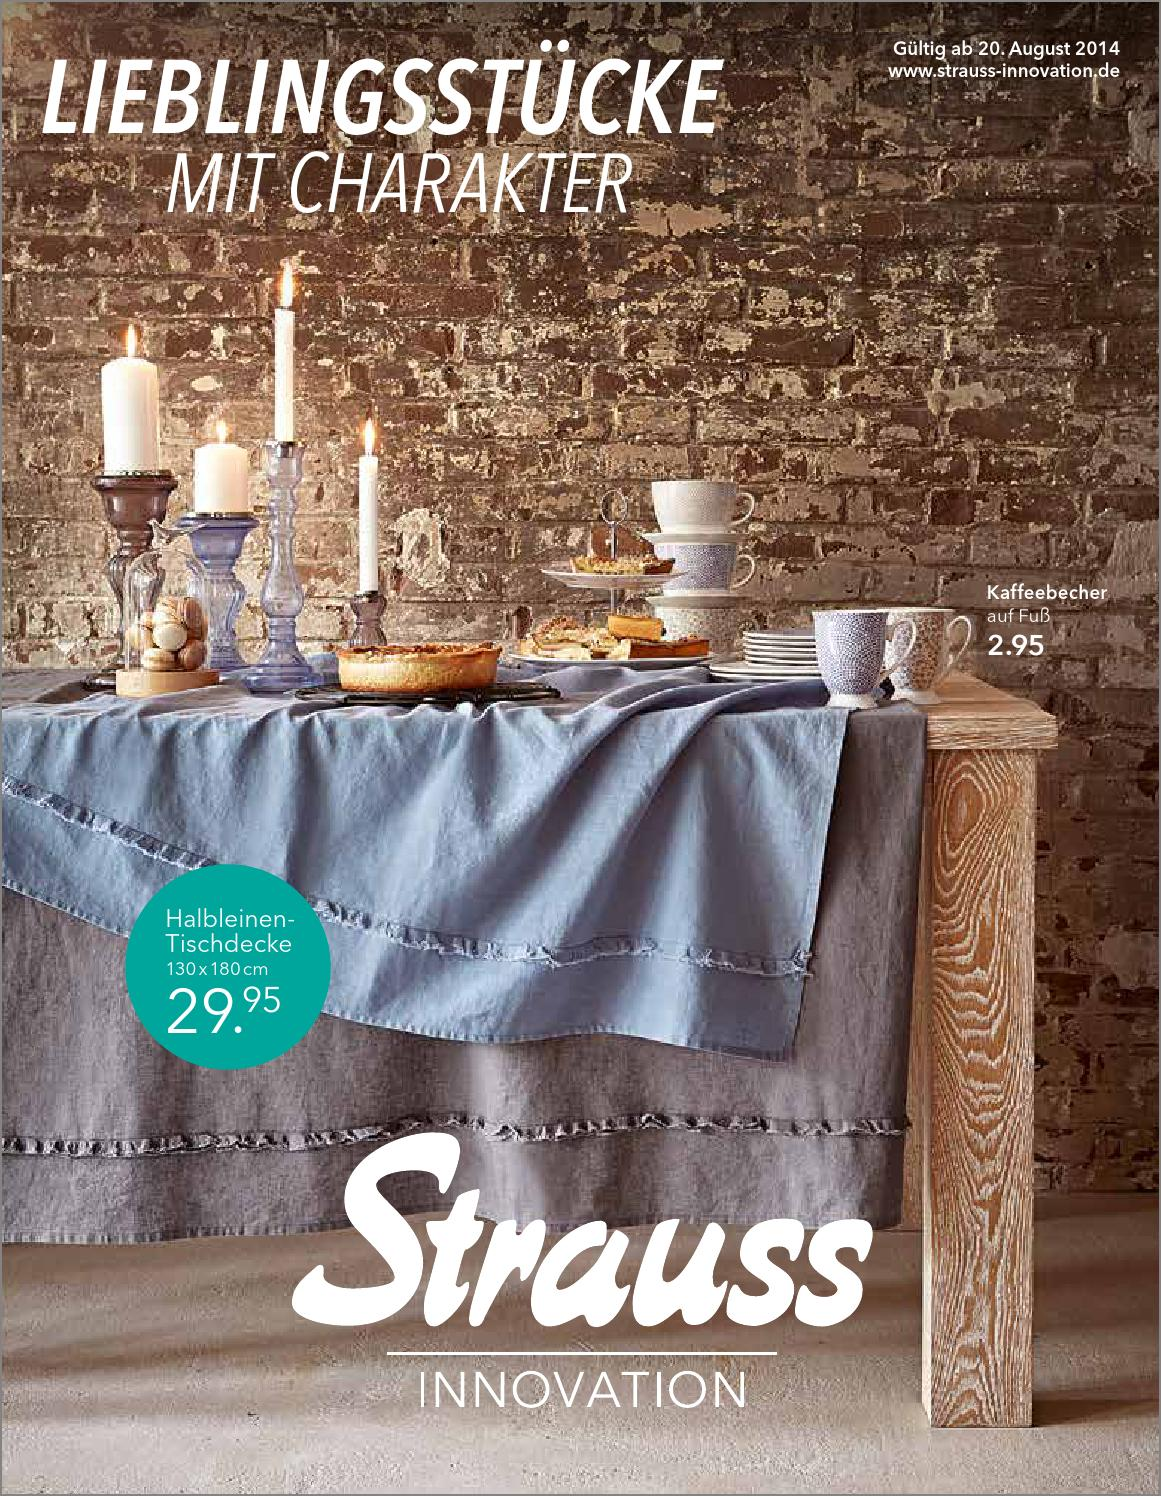 lieblingsst cke mit charakter by strauss innovation gmbh co kg issuu. Black Bedroom Furniture Sets. Home Design Ideas